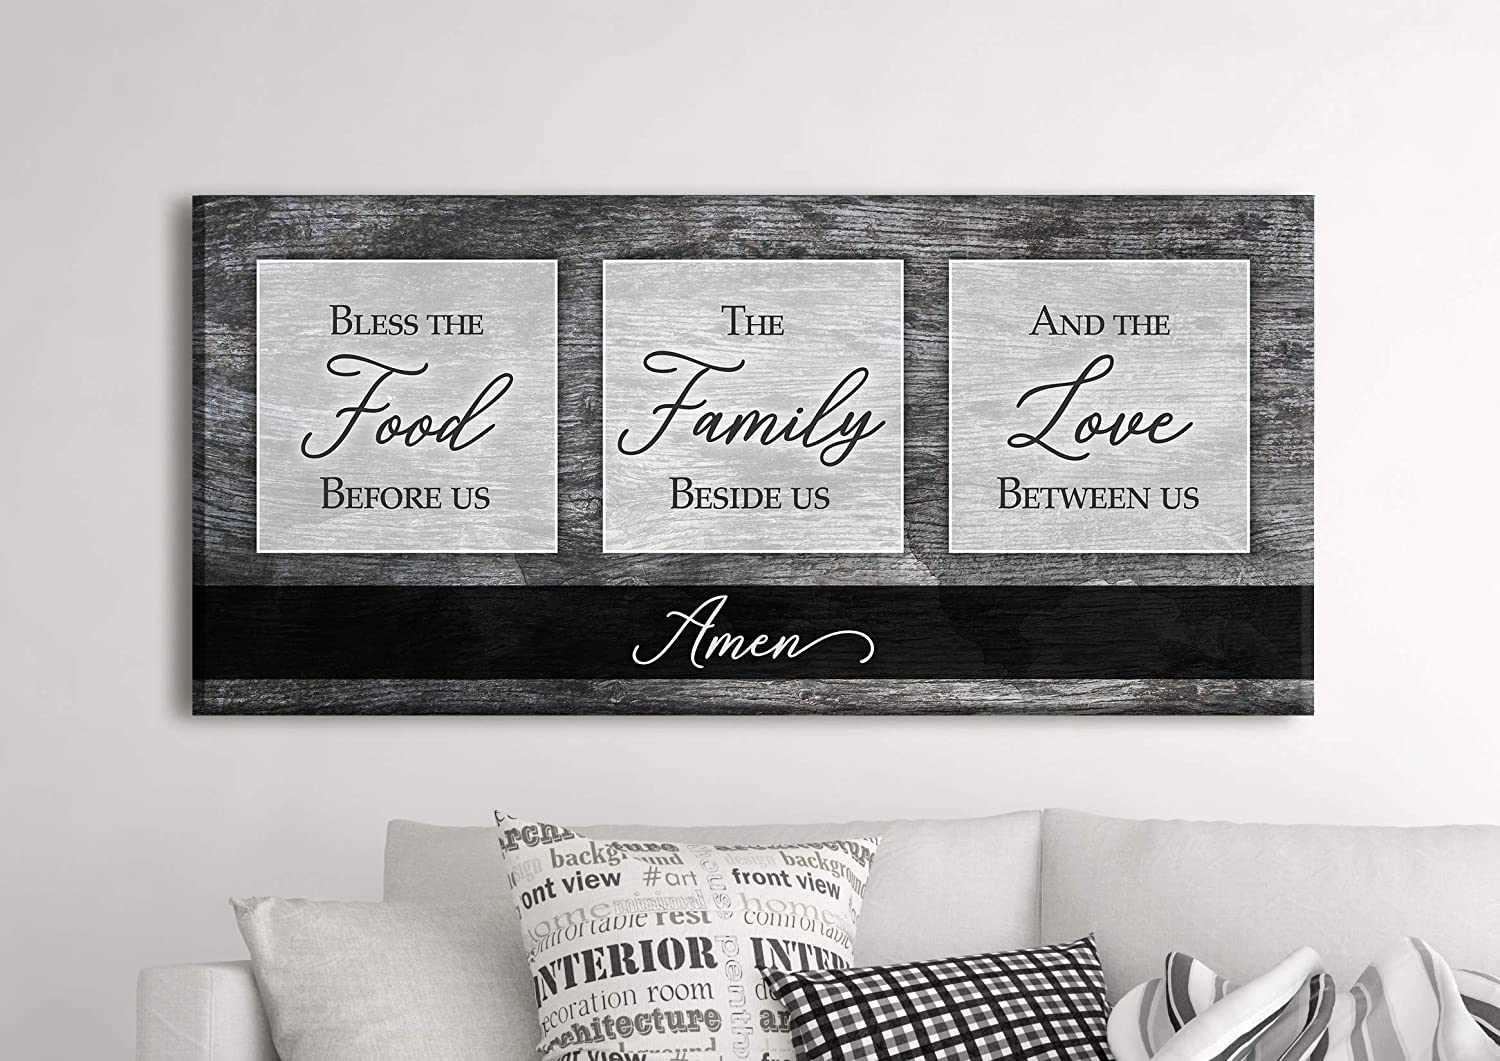 Sense of Art | Bless The Food Before Us The Family Beside Us and The Love Between Us Quote V2 | Wood Framed Canvas | Horizontal Ready to Hang Dining Room Wall Decor (Grey, 42x19)